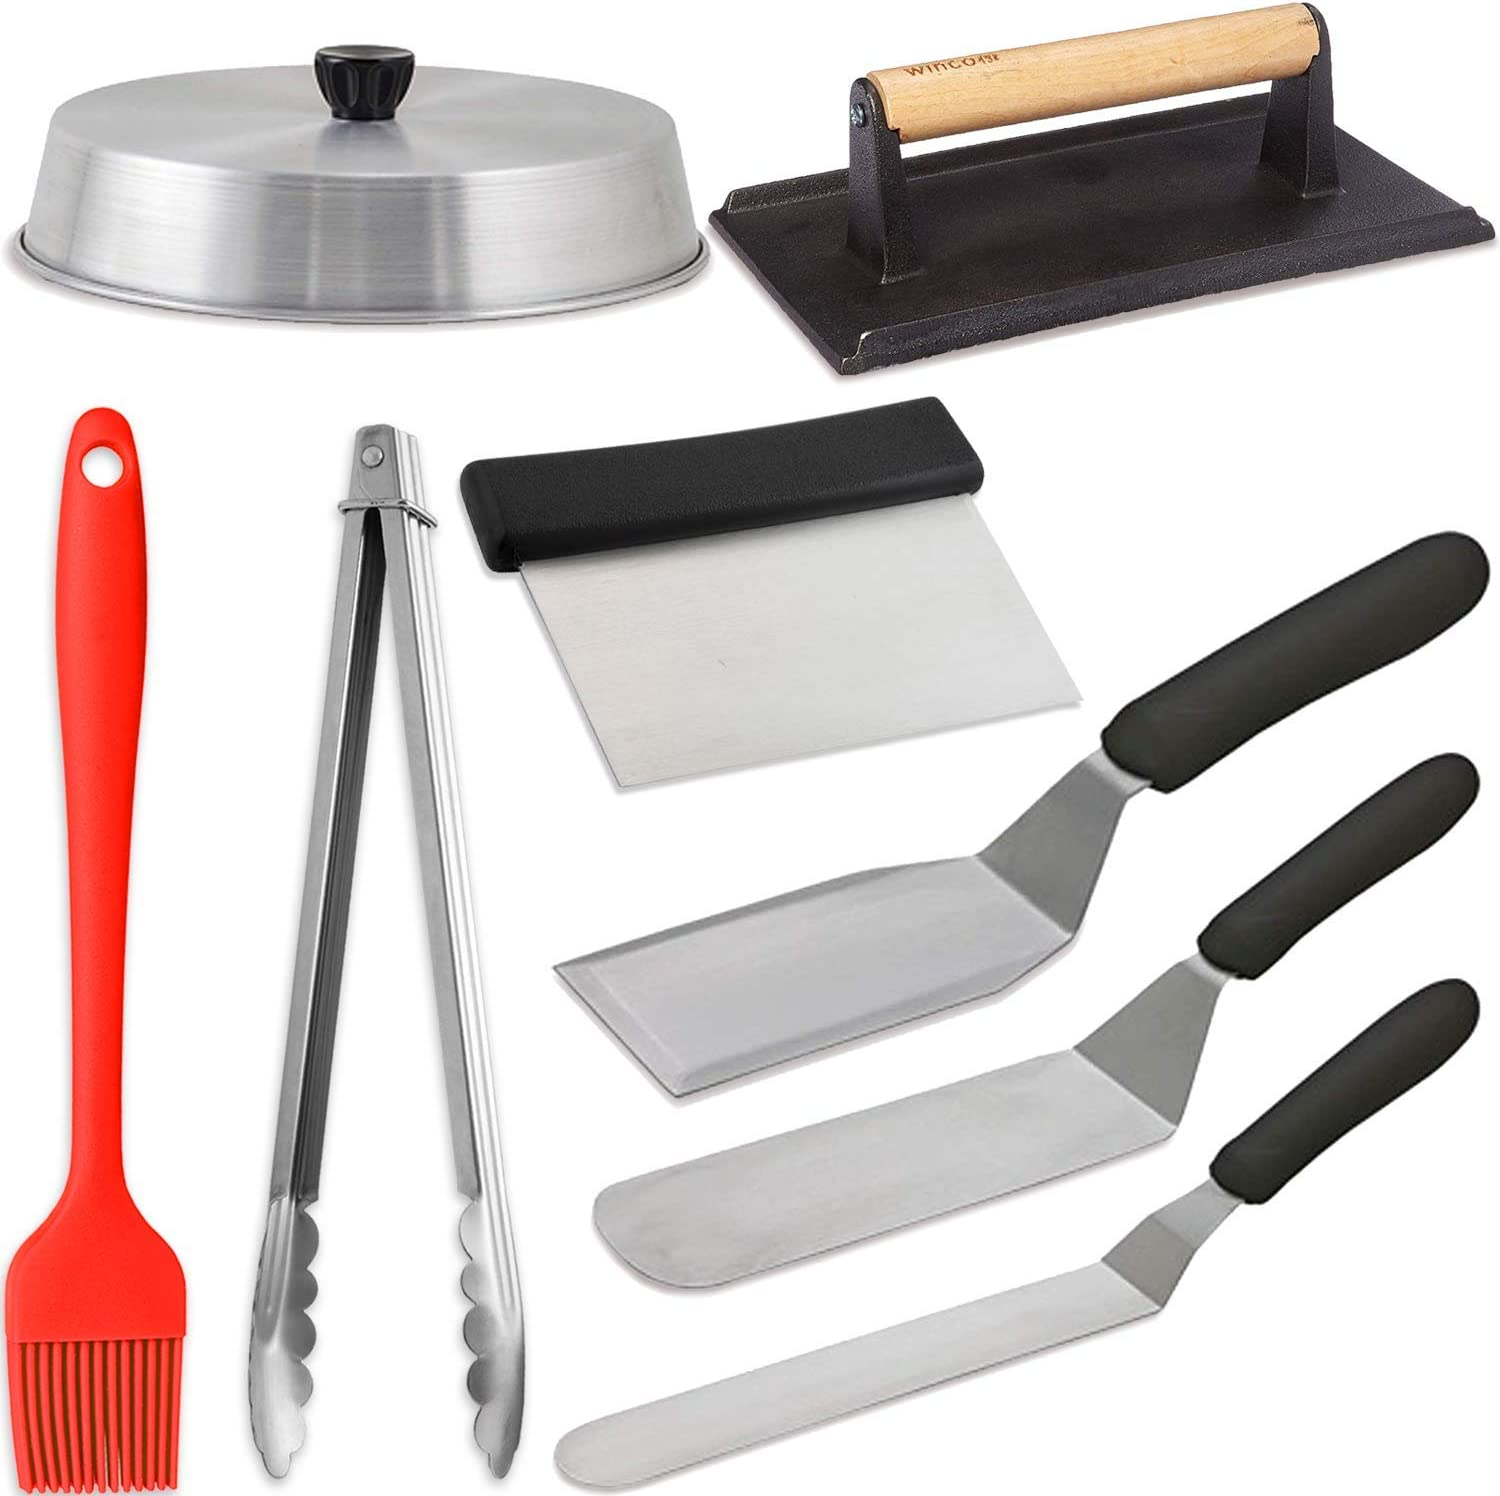 Grill Griddle BBQ Accessories Set 8 Pieces - Includes 10 Inch Round Basting Cover + Grill Press + 3 Spatulas + Scraper + 12